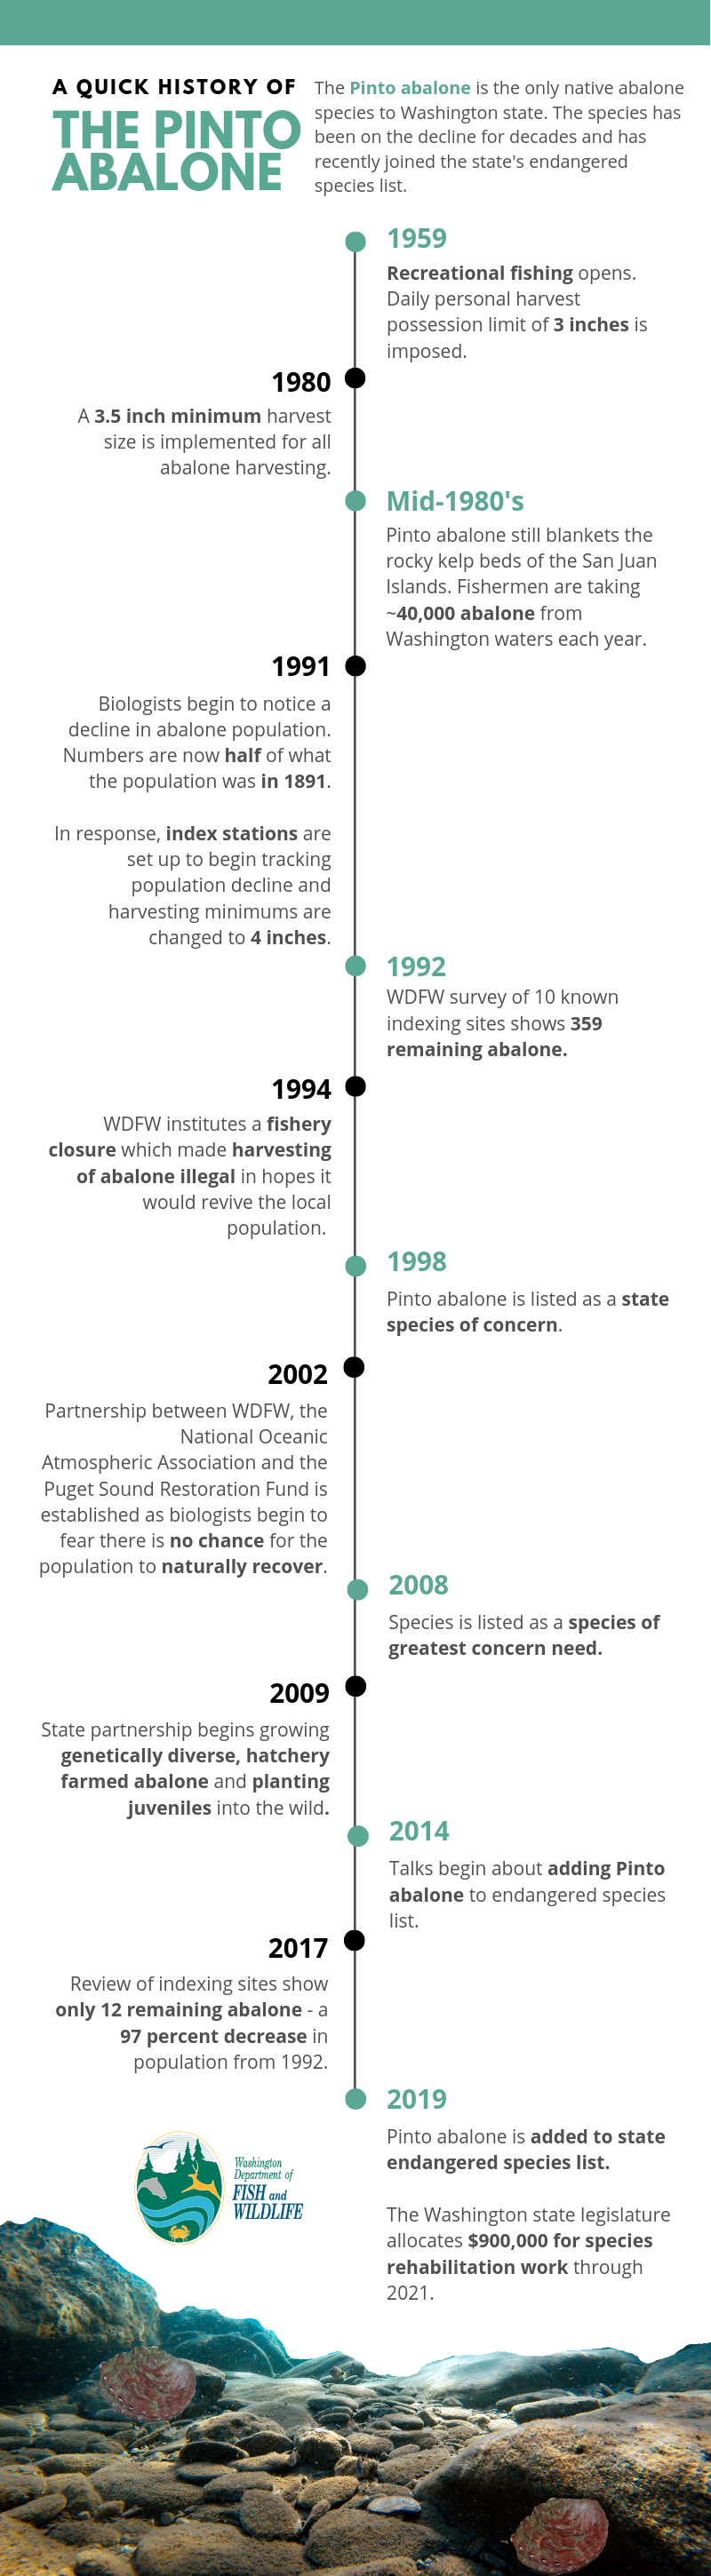 A timeline of the decline of the Pinto abalone.